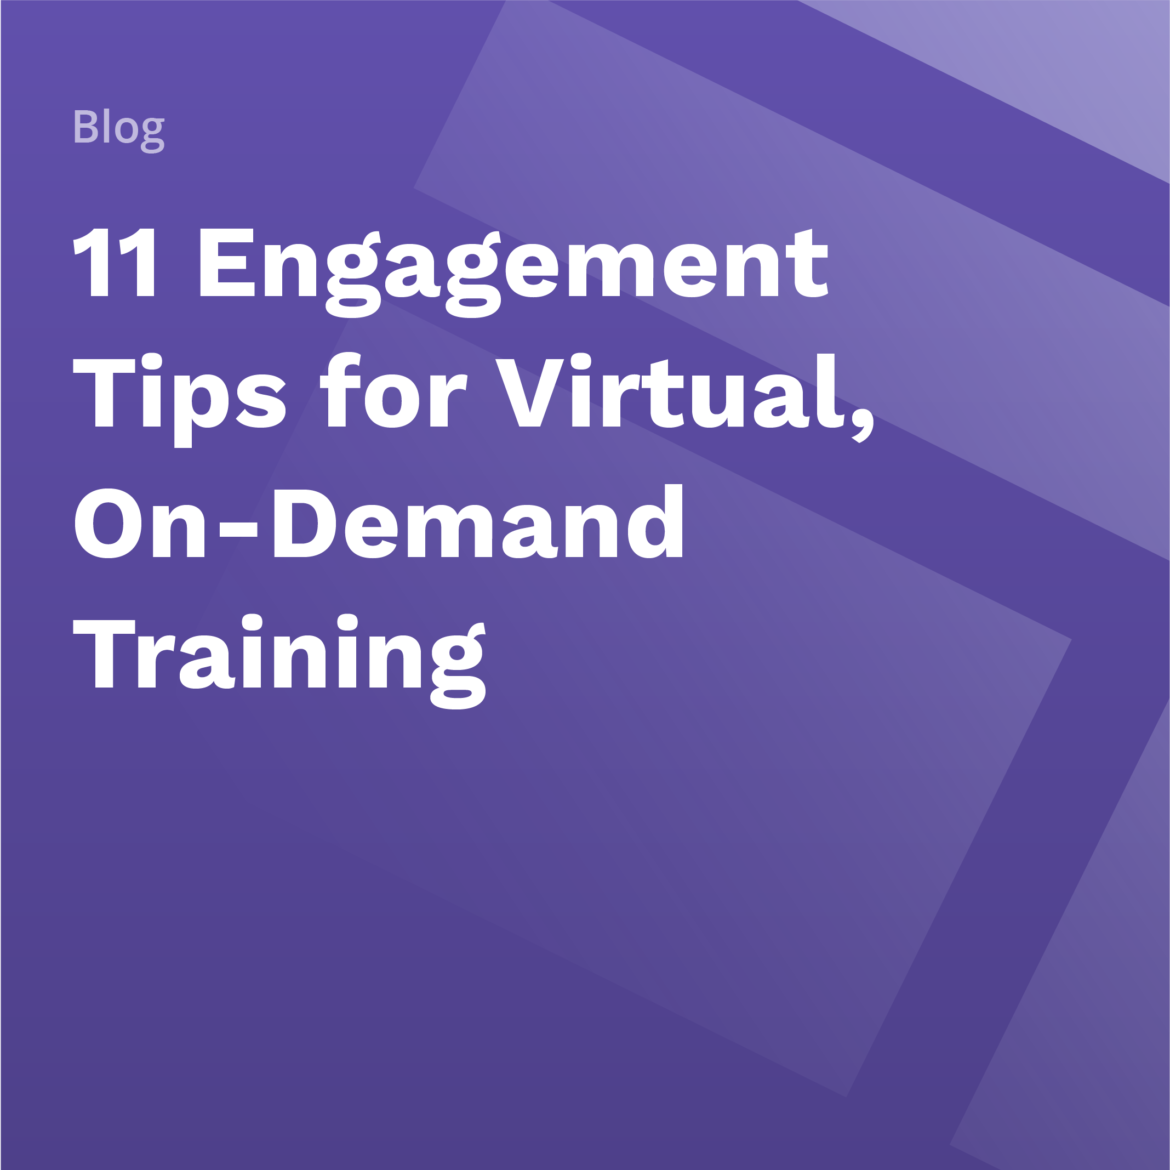 On-Demand Training Tips